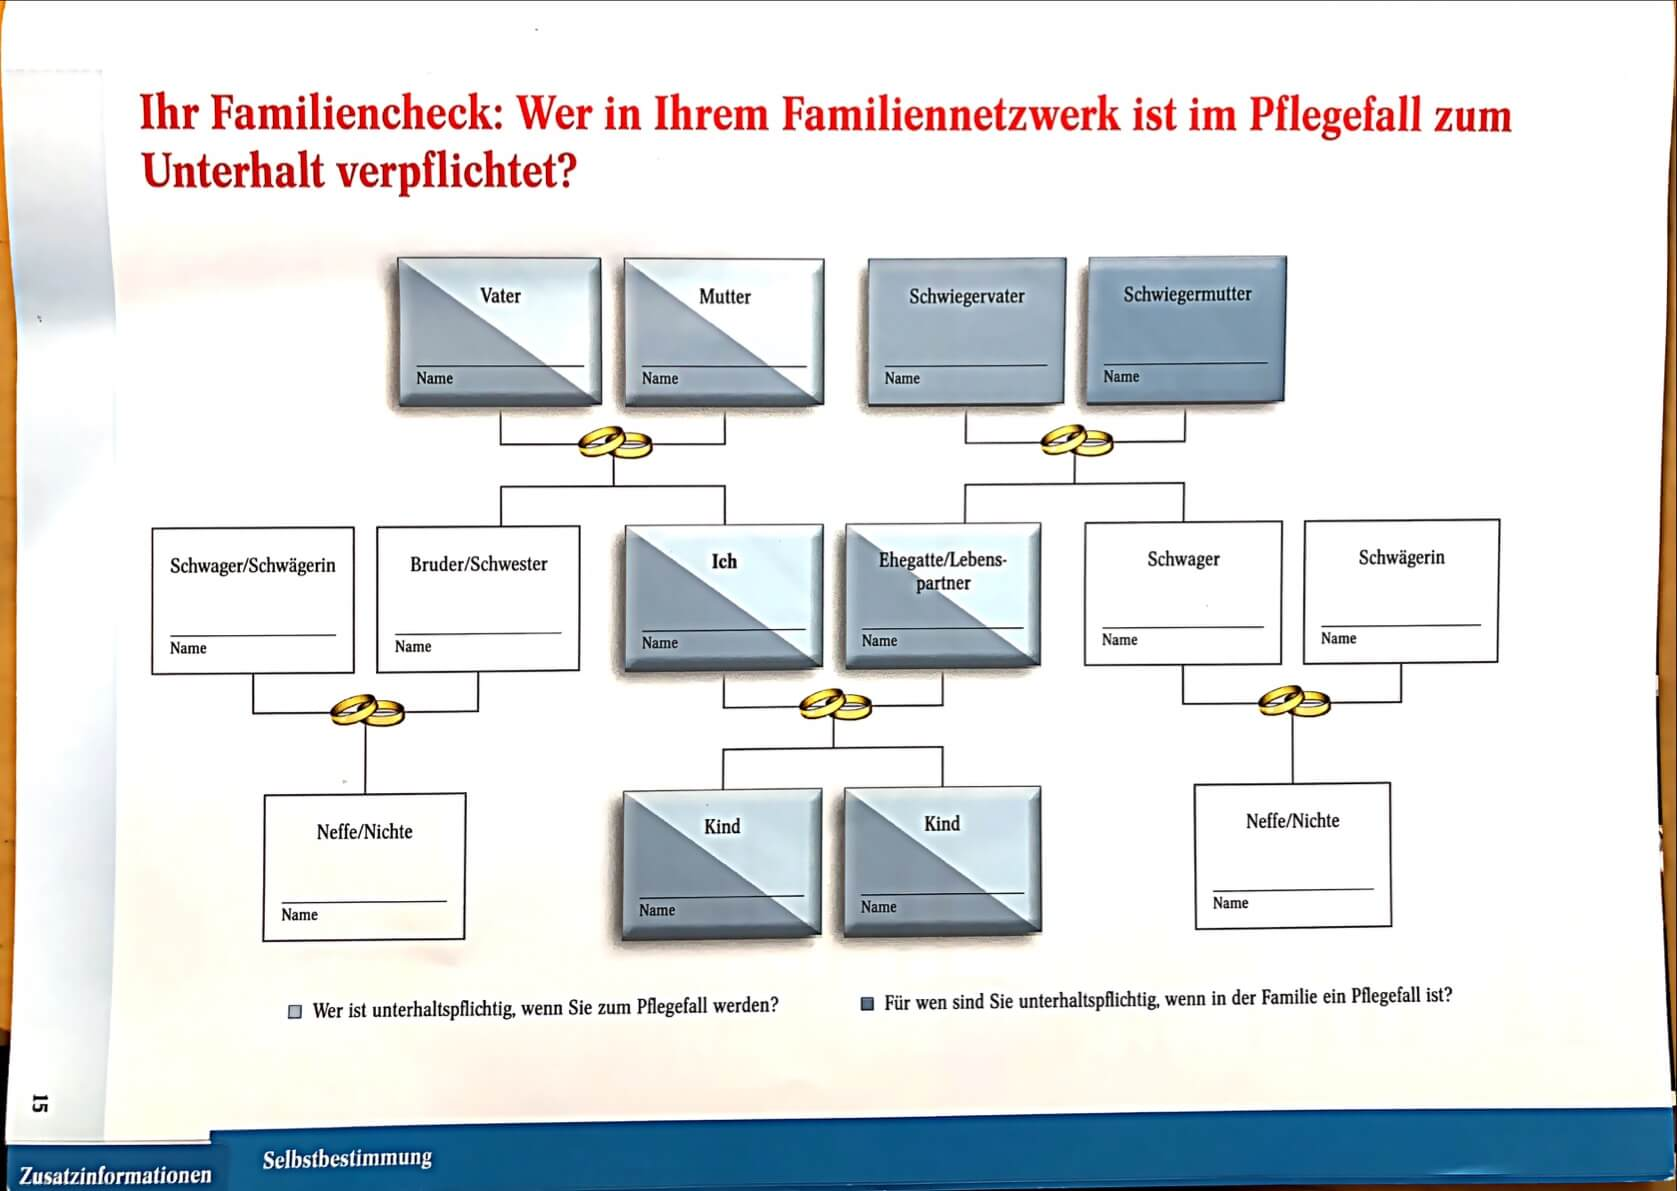 Familiencheck im Pflegefall